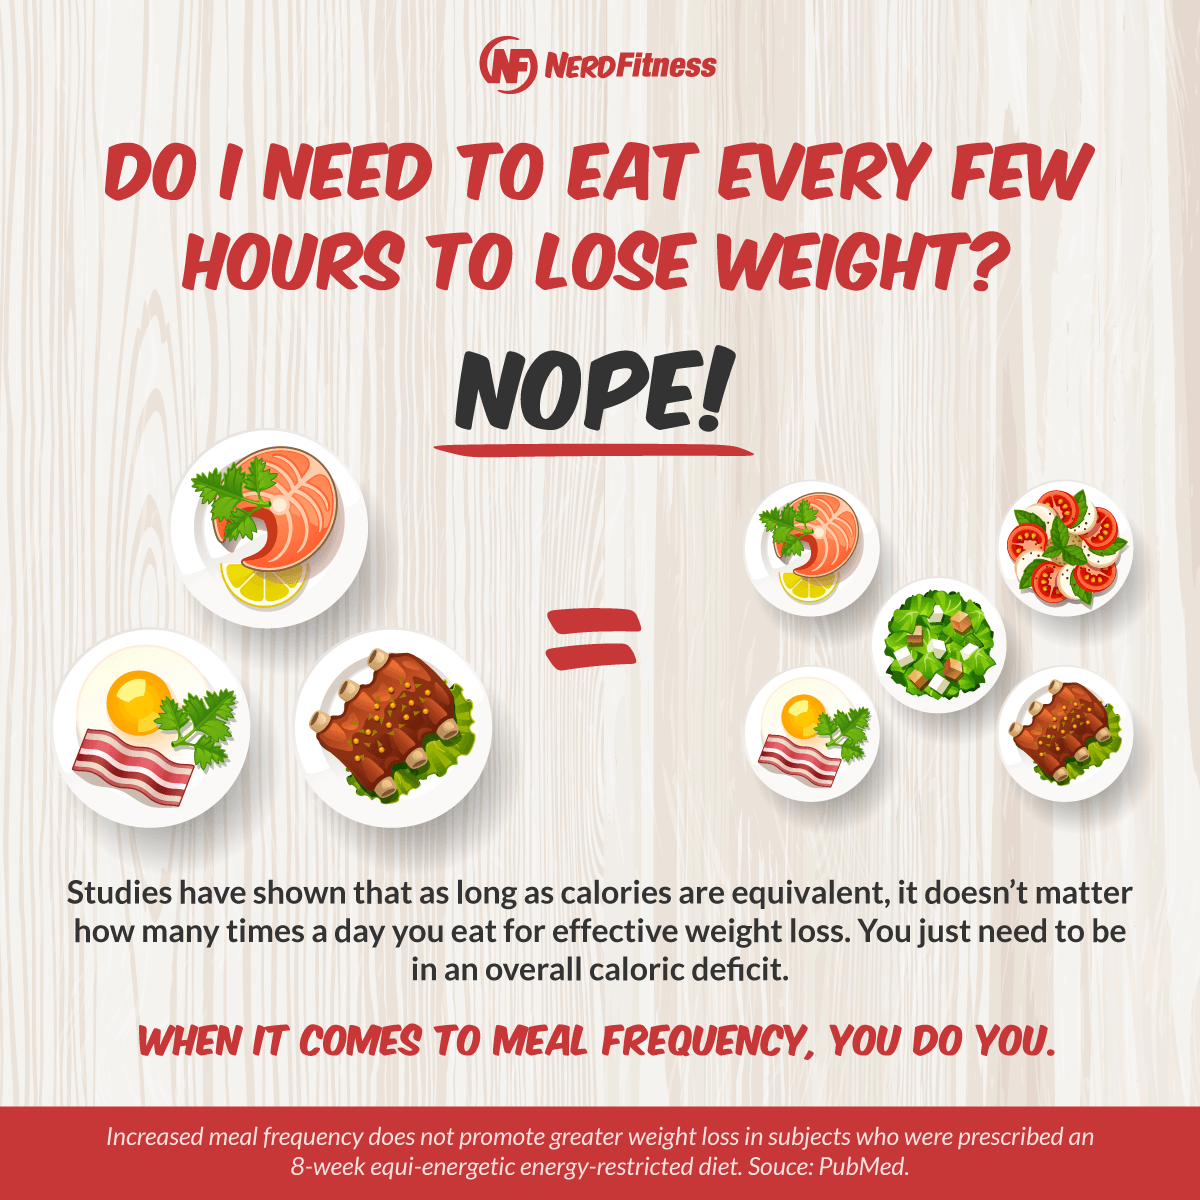 This infographic discusses how snacking isn't necessary for weight loss.